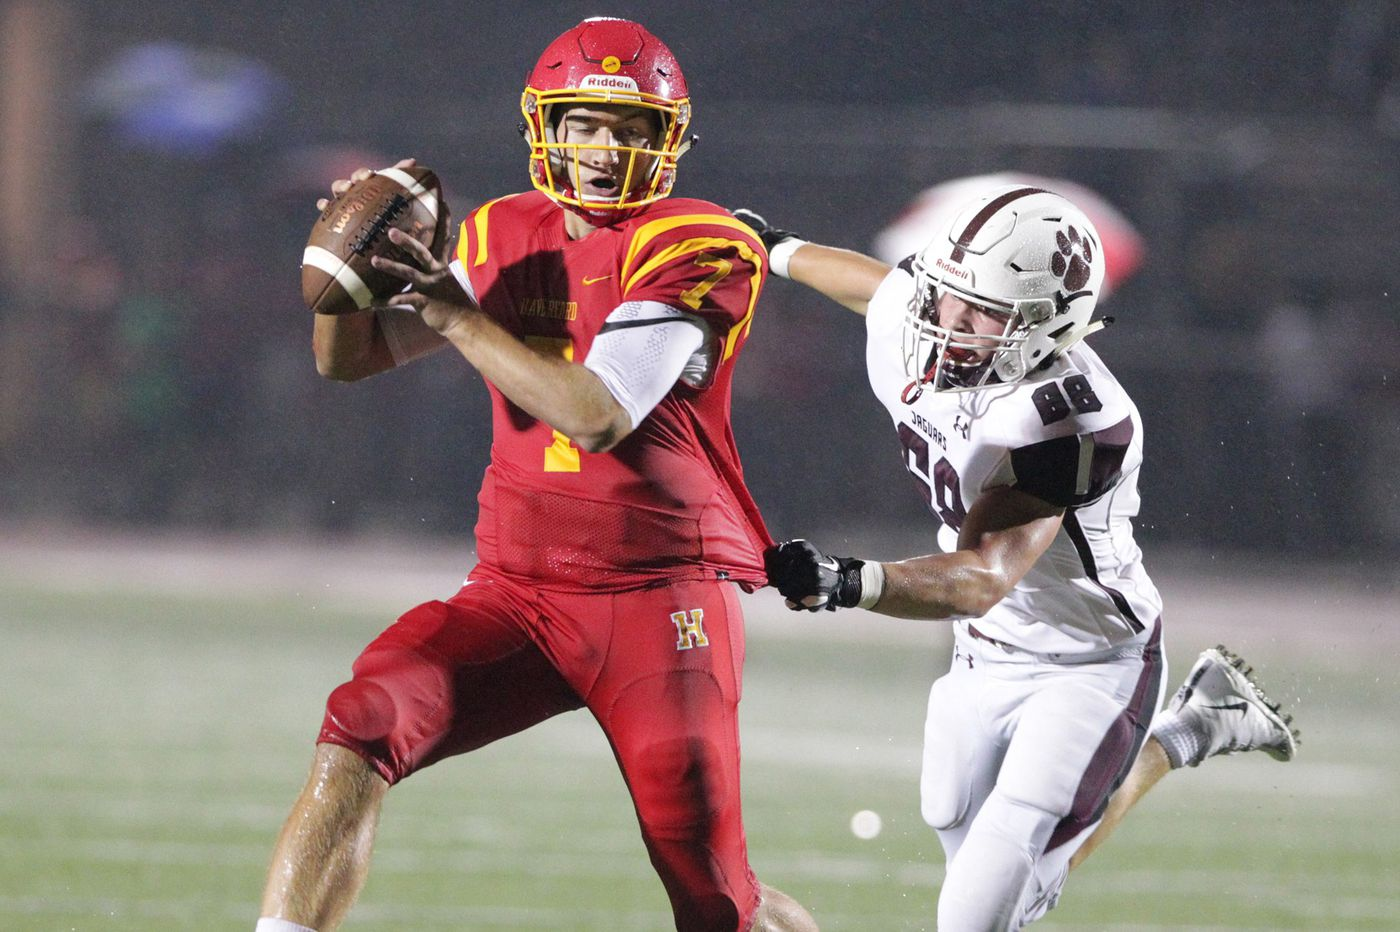 Saturday's Pa. roundup: Haverford High dominates second half to knock off Radnor